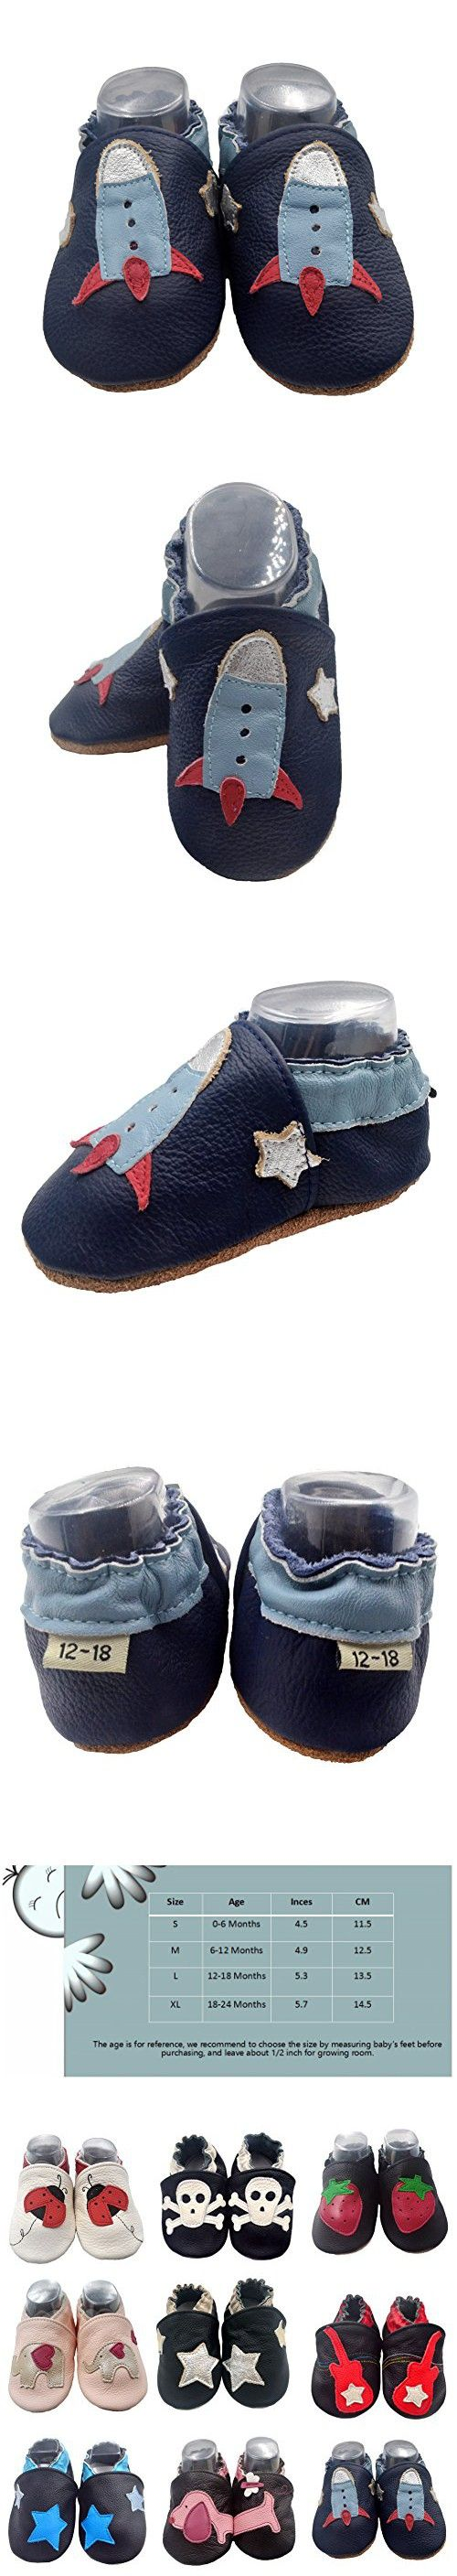 IEvolve Baby Shoes Rocket Baby Toddler Soft Sole Prewalker Baby First Walking Shoes Crib Shoes Baby Moccasins(Navyblue Rocket, 18-24 Months)